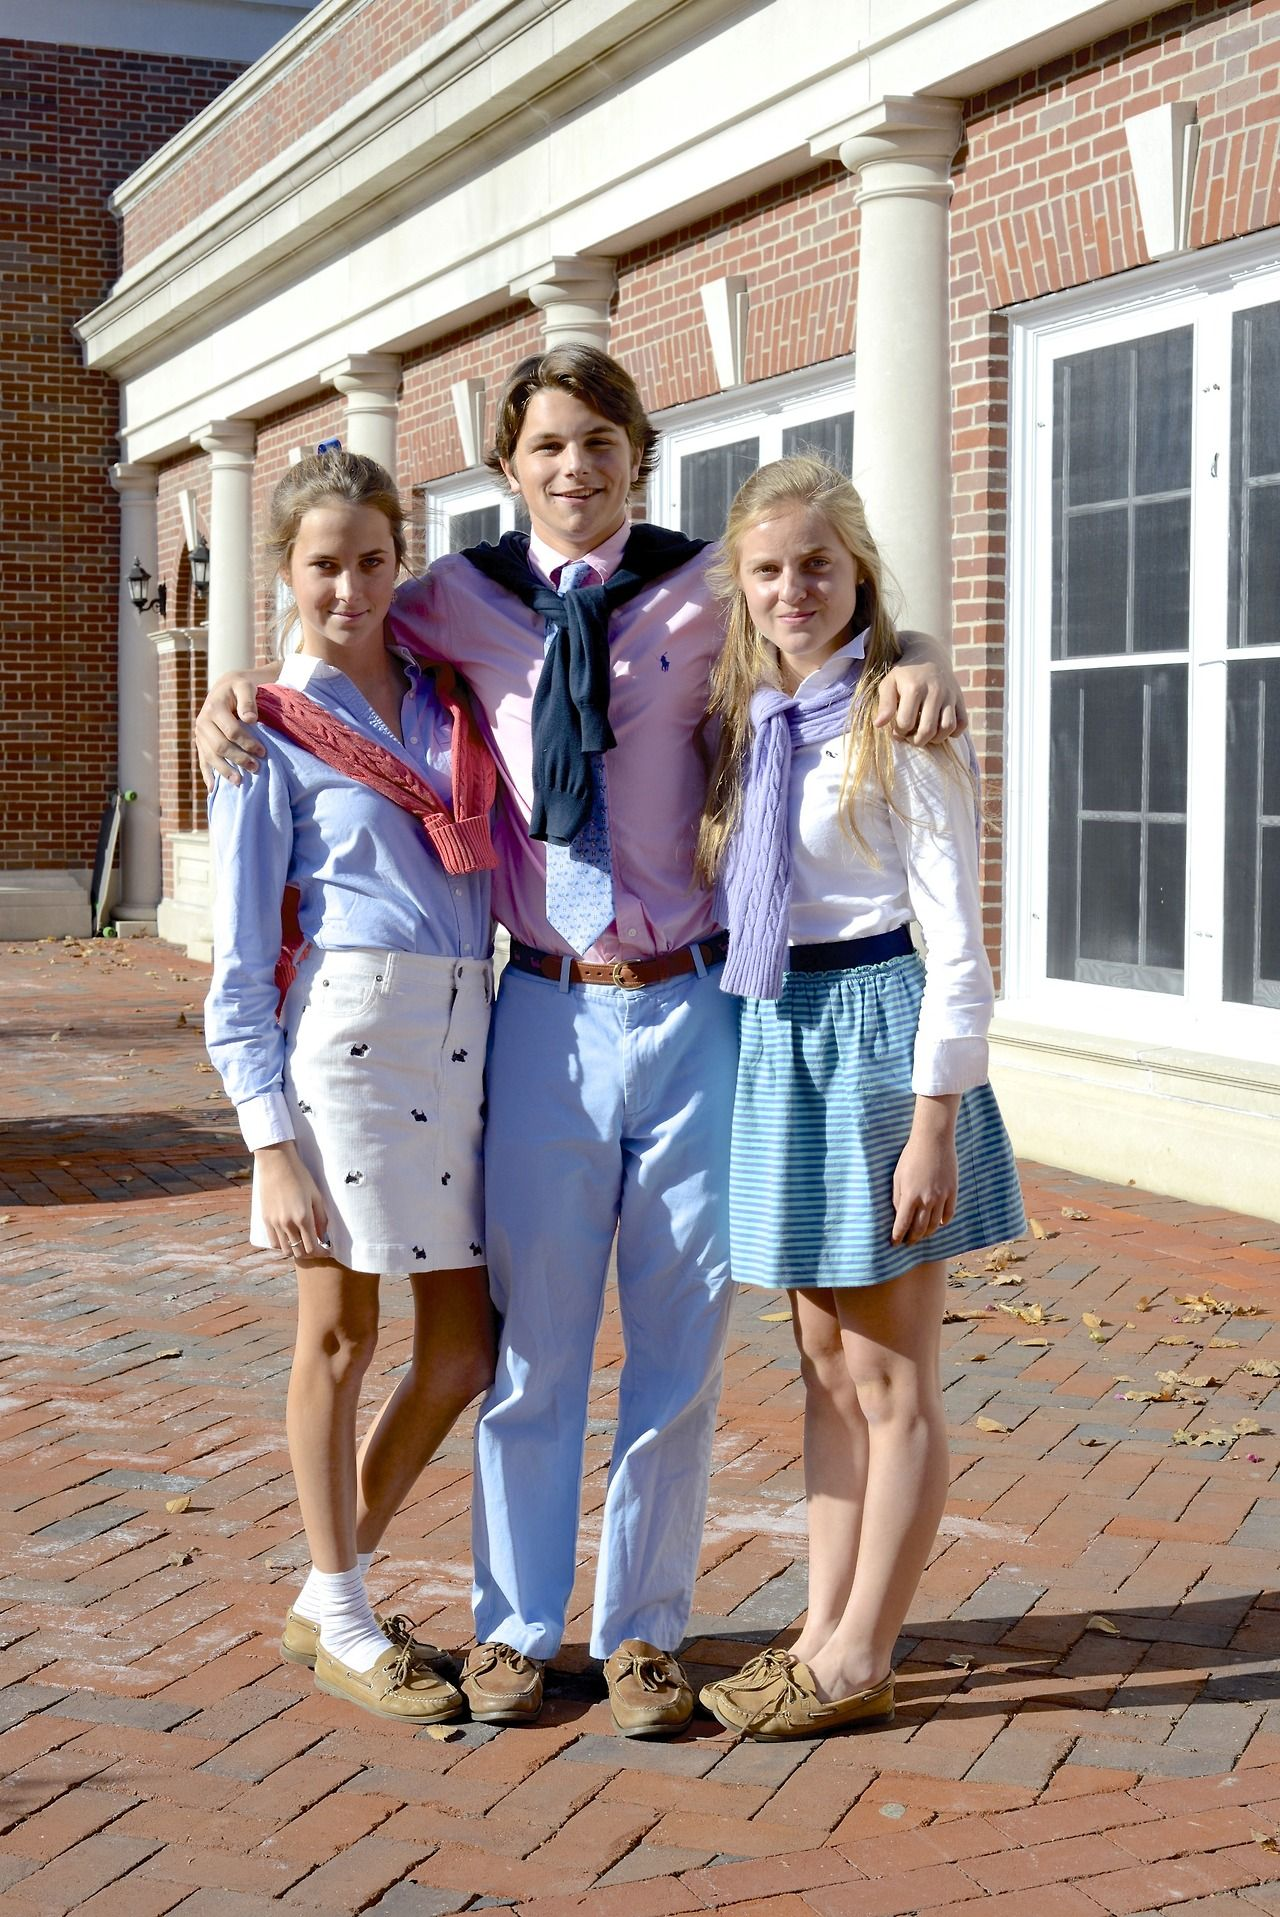 this preppy look was popular around the 70 s 90 s we learned